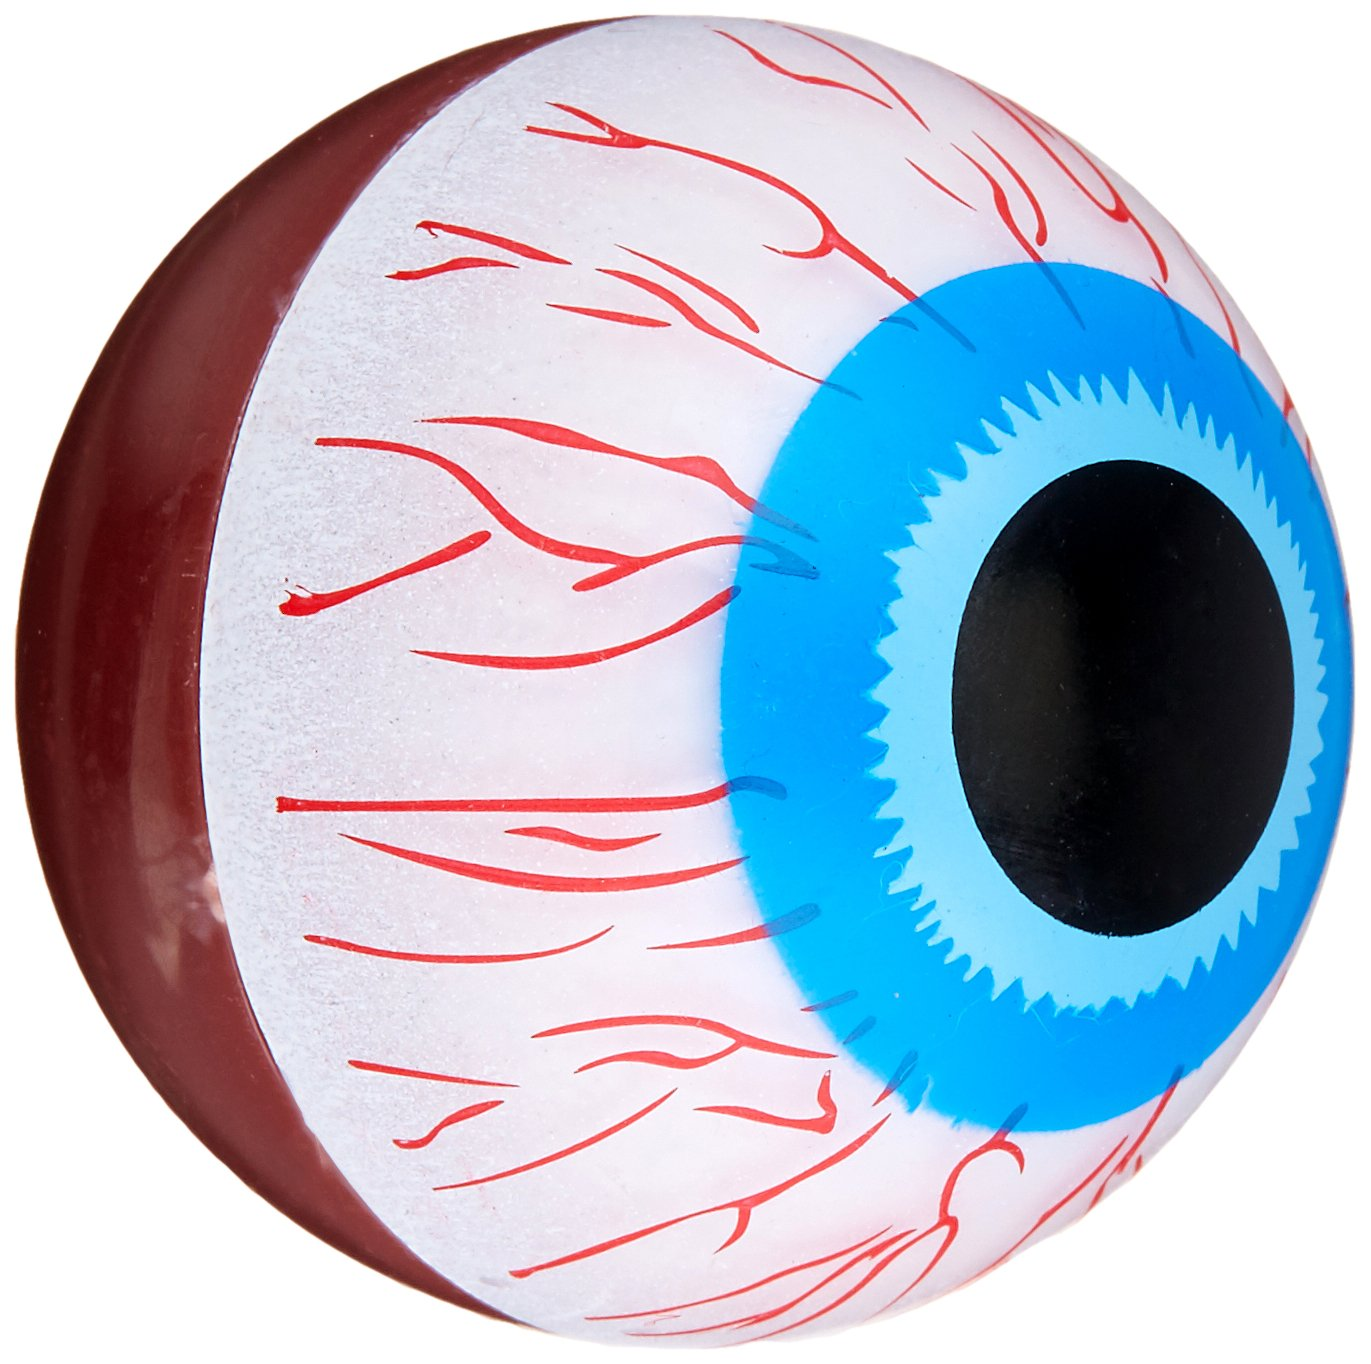 Your Guests Will Love this Floating Eyeball